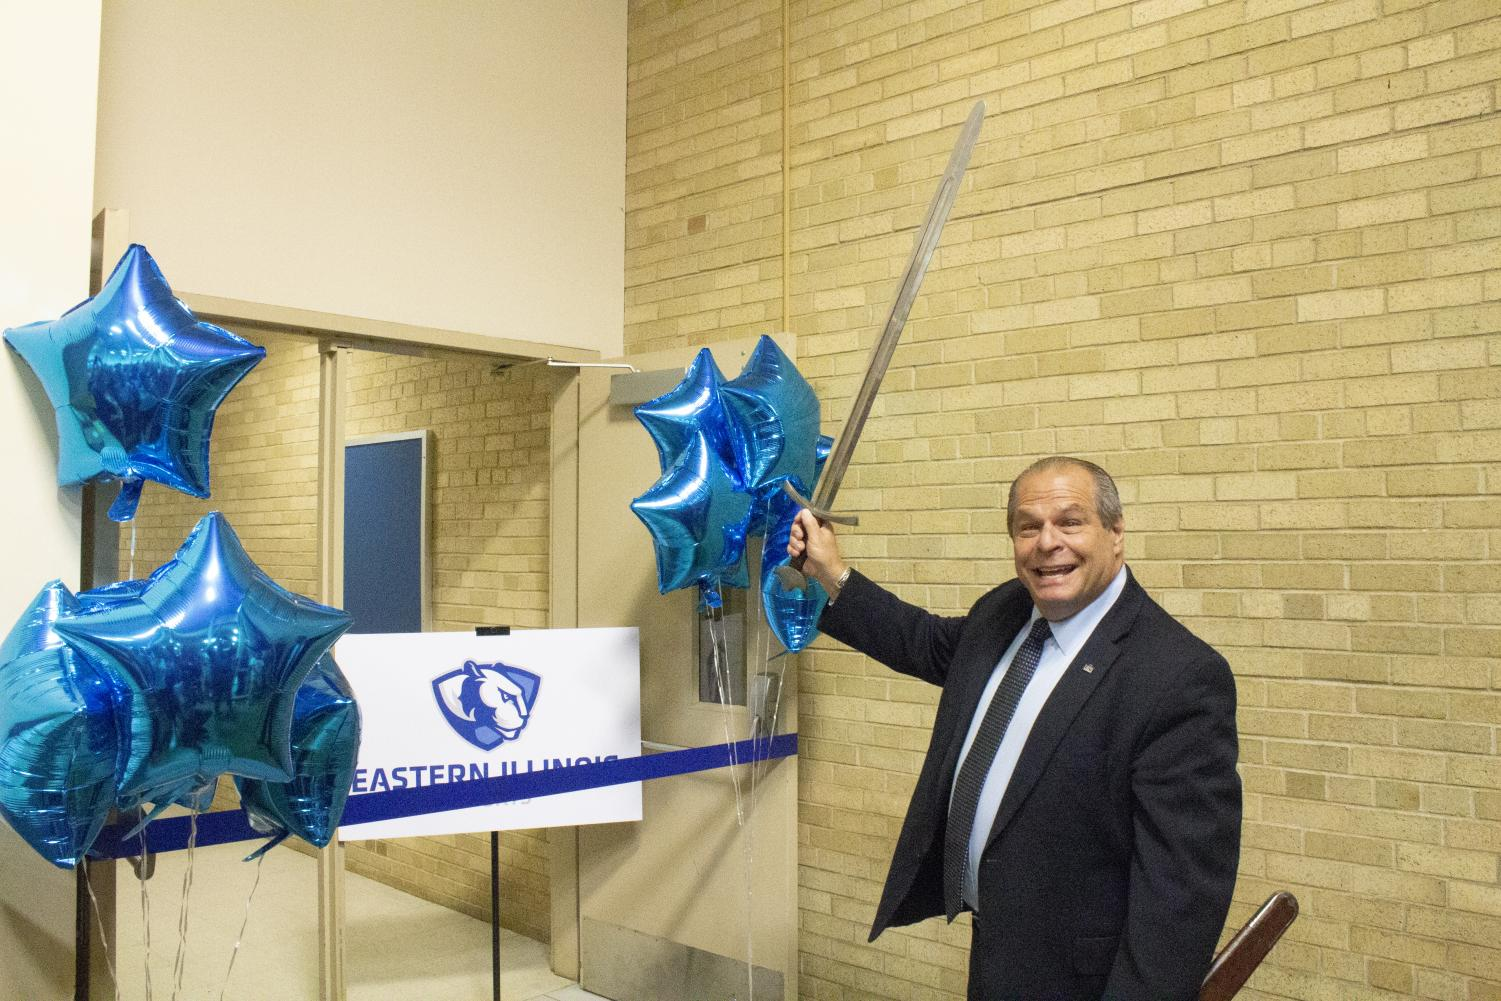 Eastern President David Glassman is ready to cut the ribbon with a sword for the new eSports arena in Lantz Arena. The arena will host video game tournaments and teams.